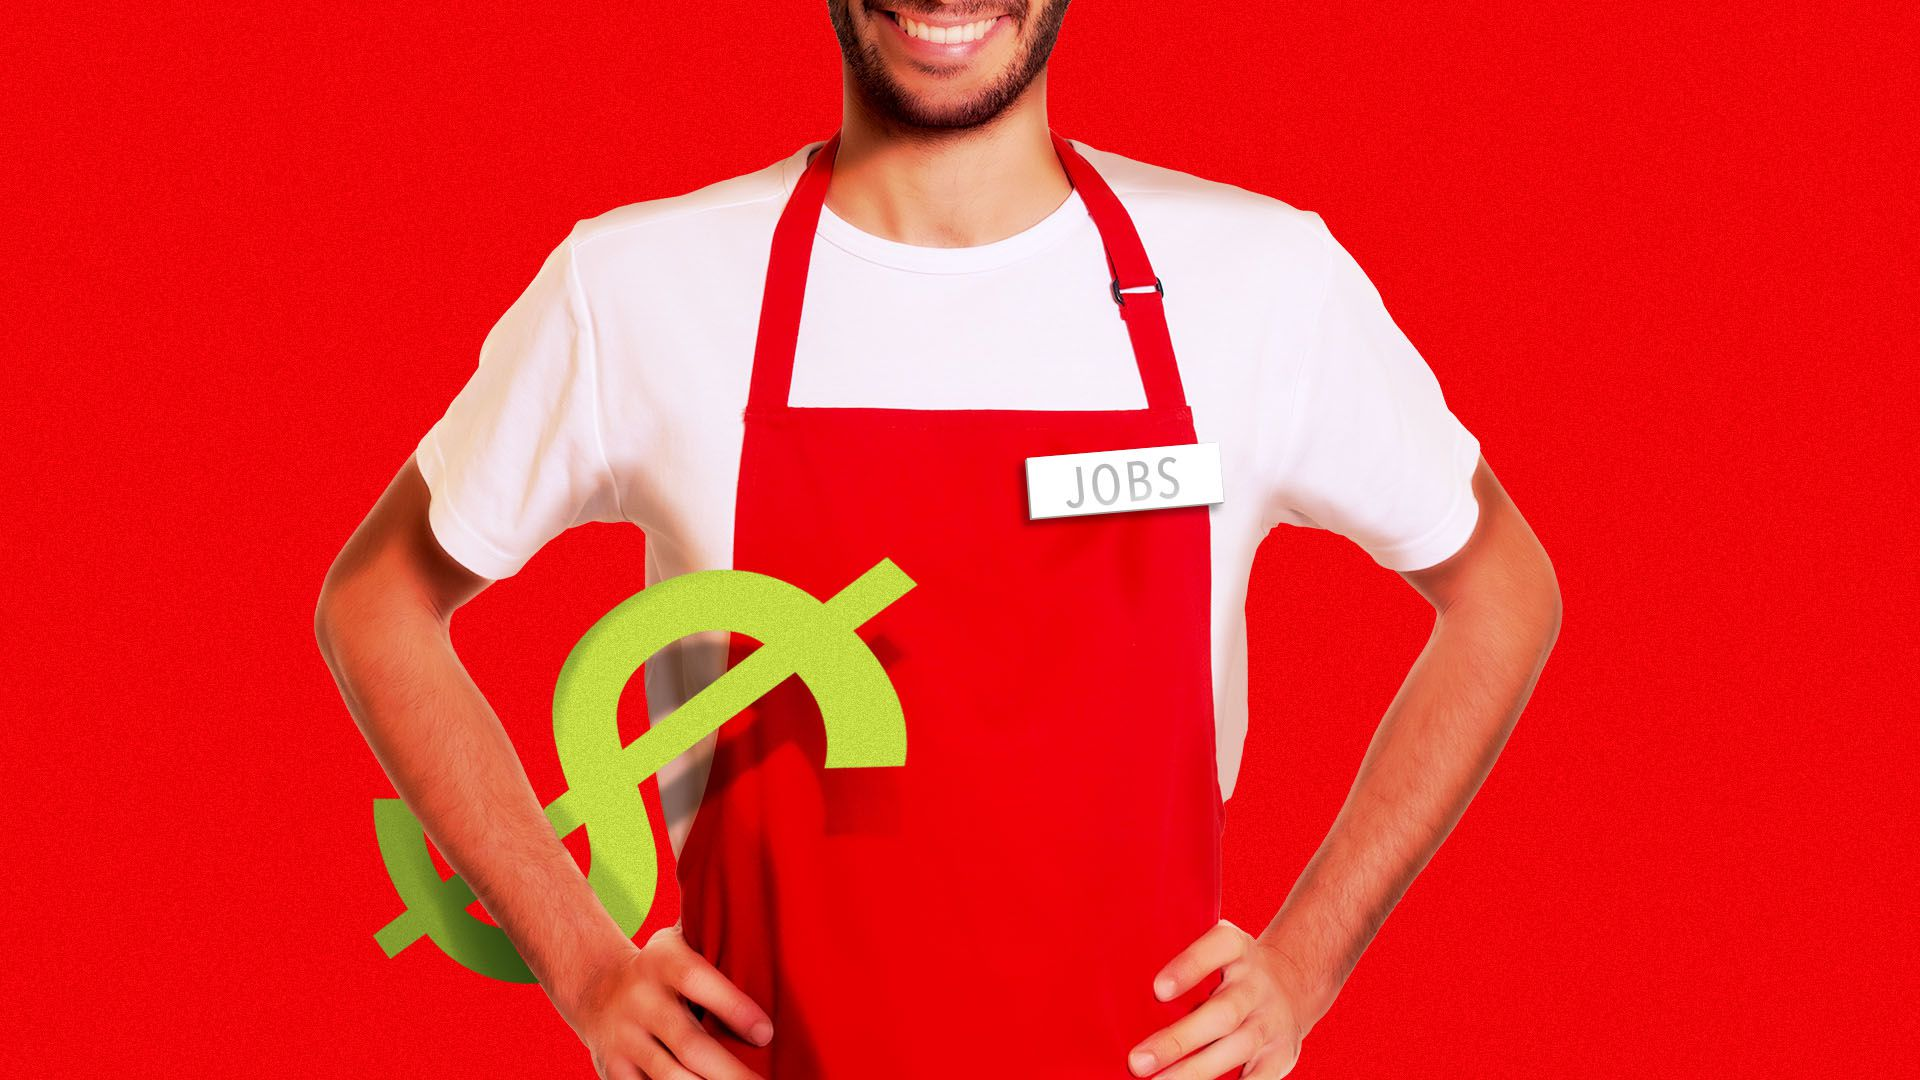 Illustration of a man wearing a red apron and a nametag, with a dollar sign under his arm